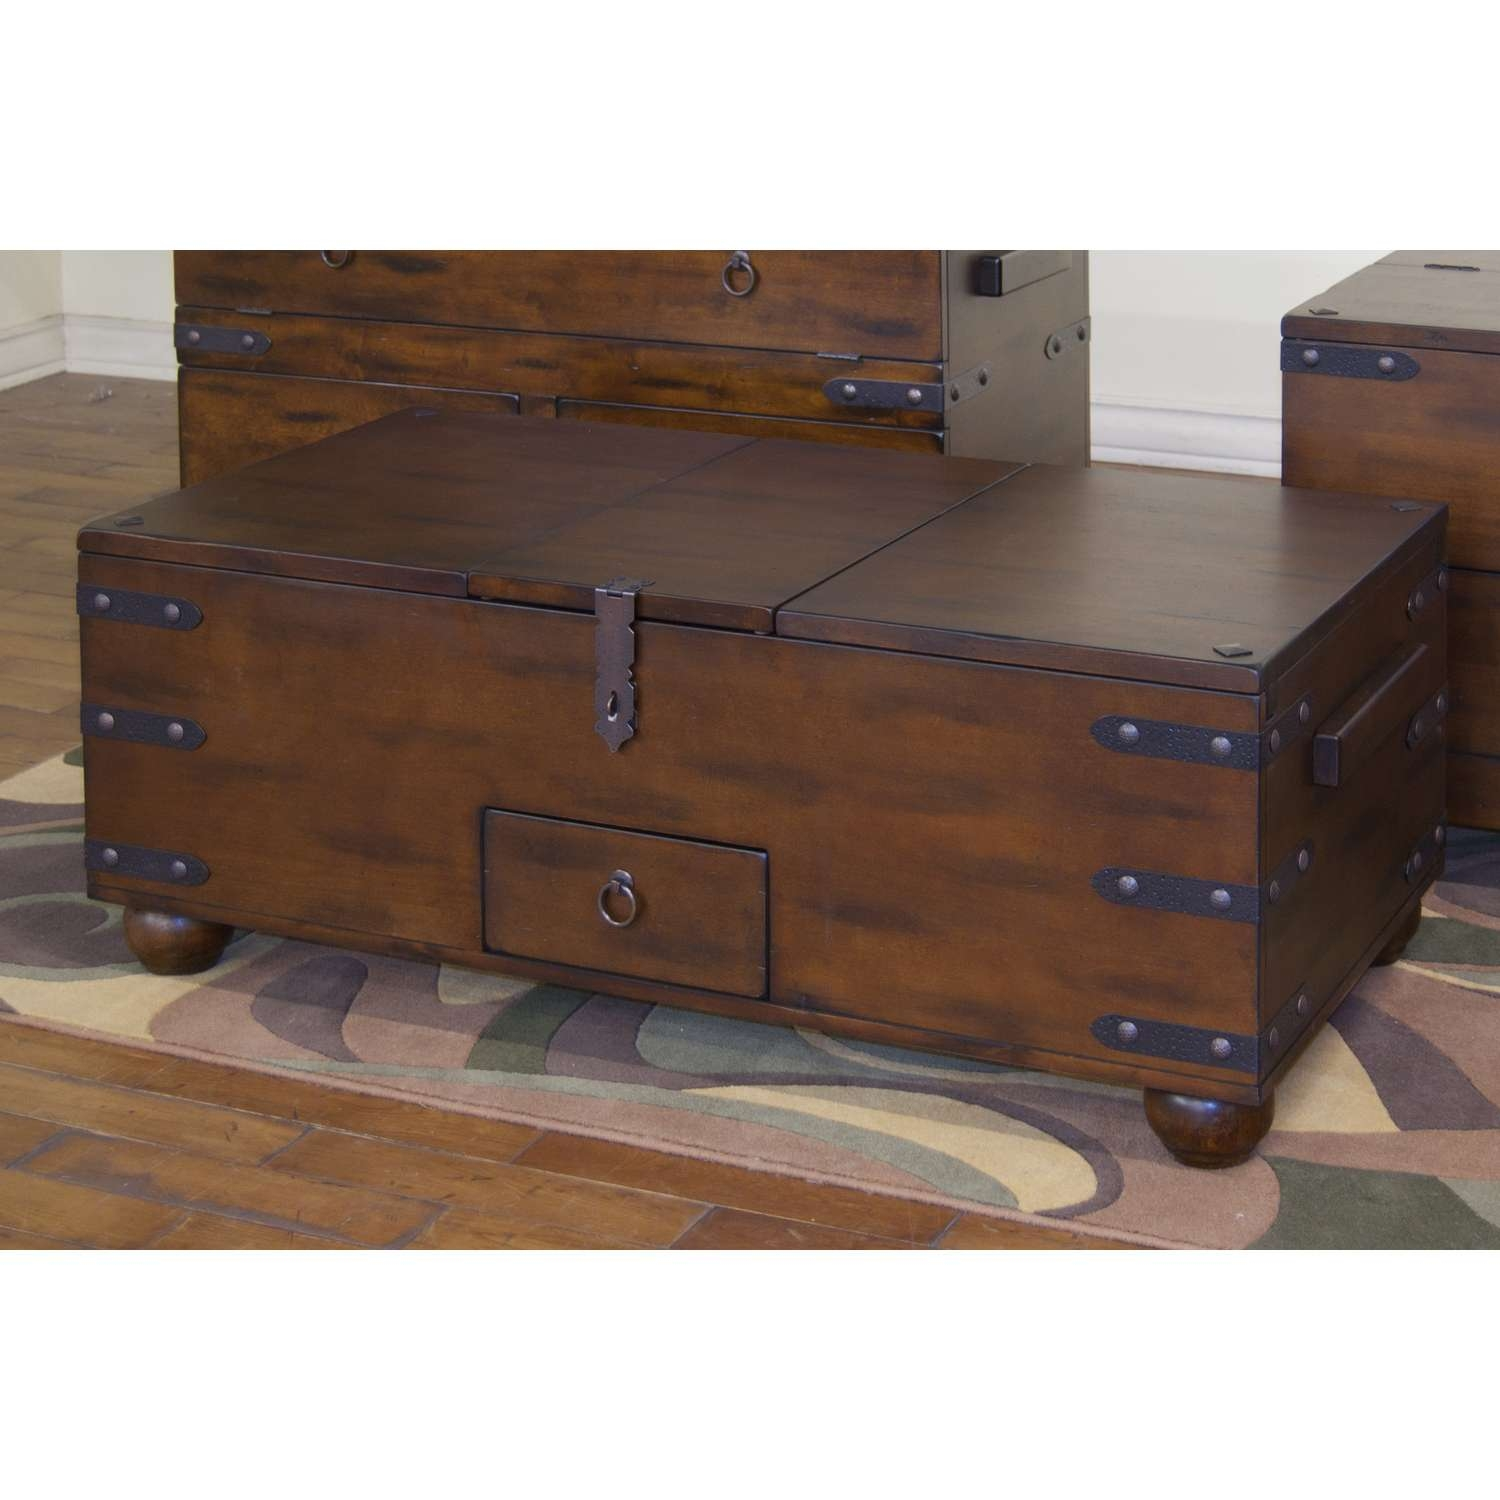 Square Chest Coffee Table Tables Thippo With Proportions X Large Throughout Most Recent Trunk Chest Coffee Tables (View 17 of 20)